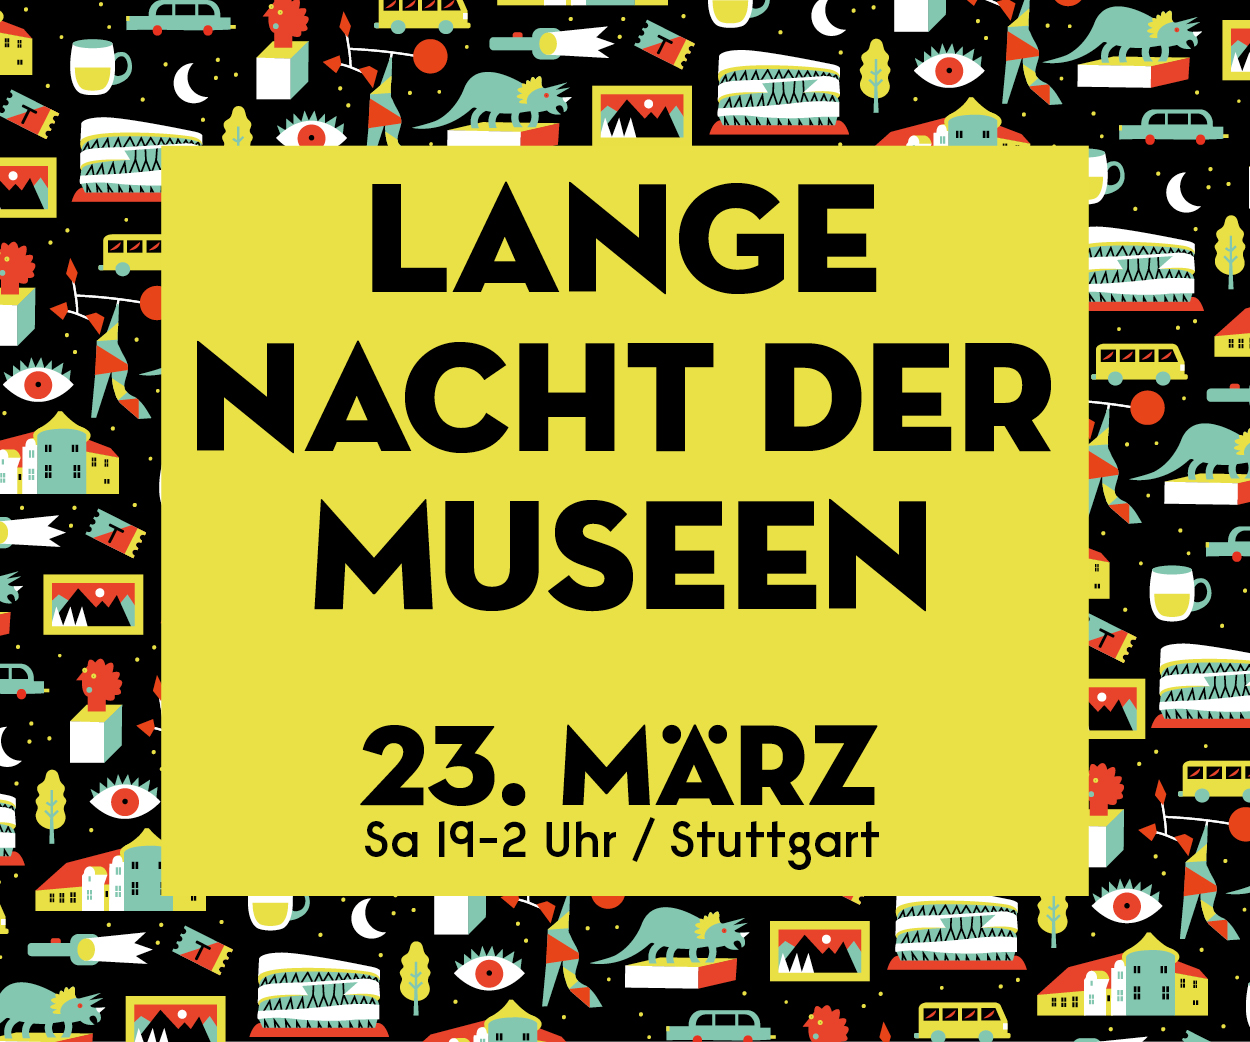 Lange Nacht der Museen 2019. (LNDM19_Rectangle_300pxx80px)